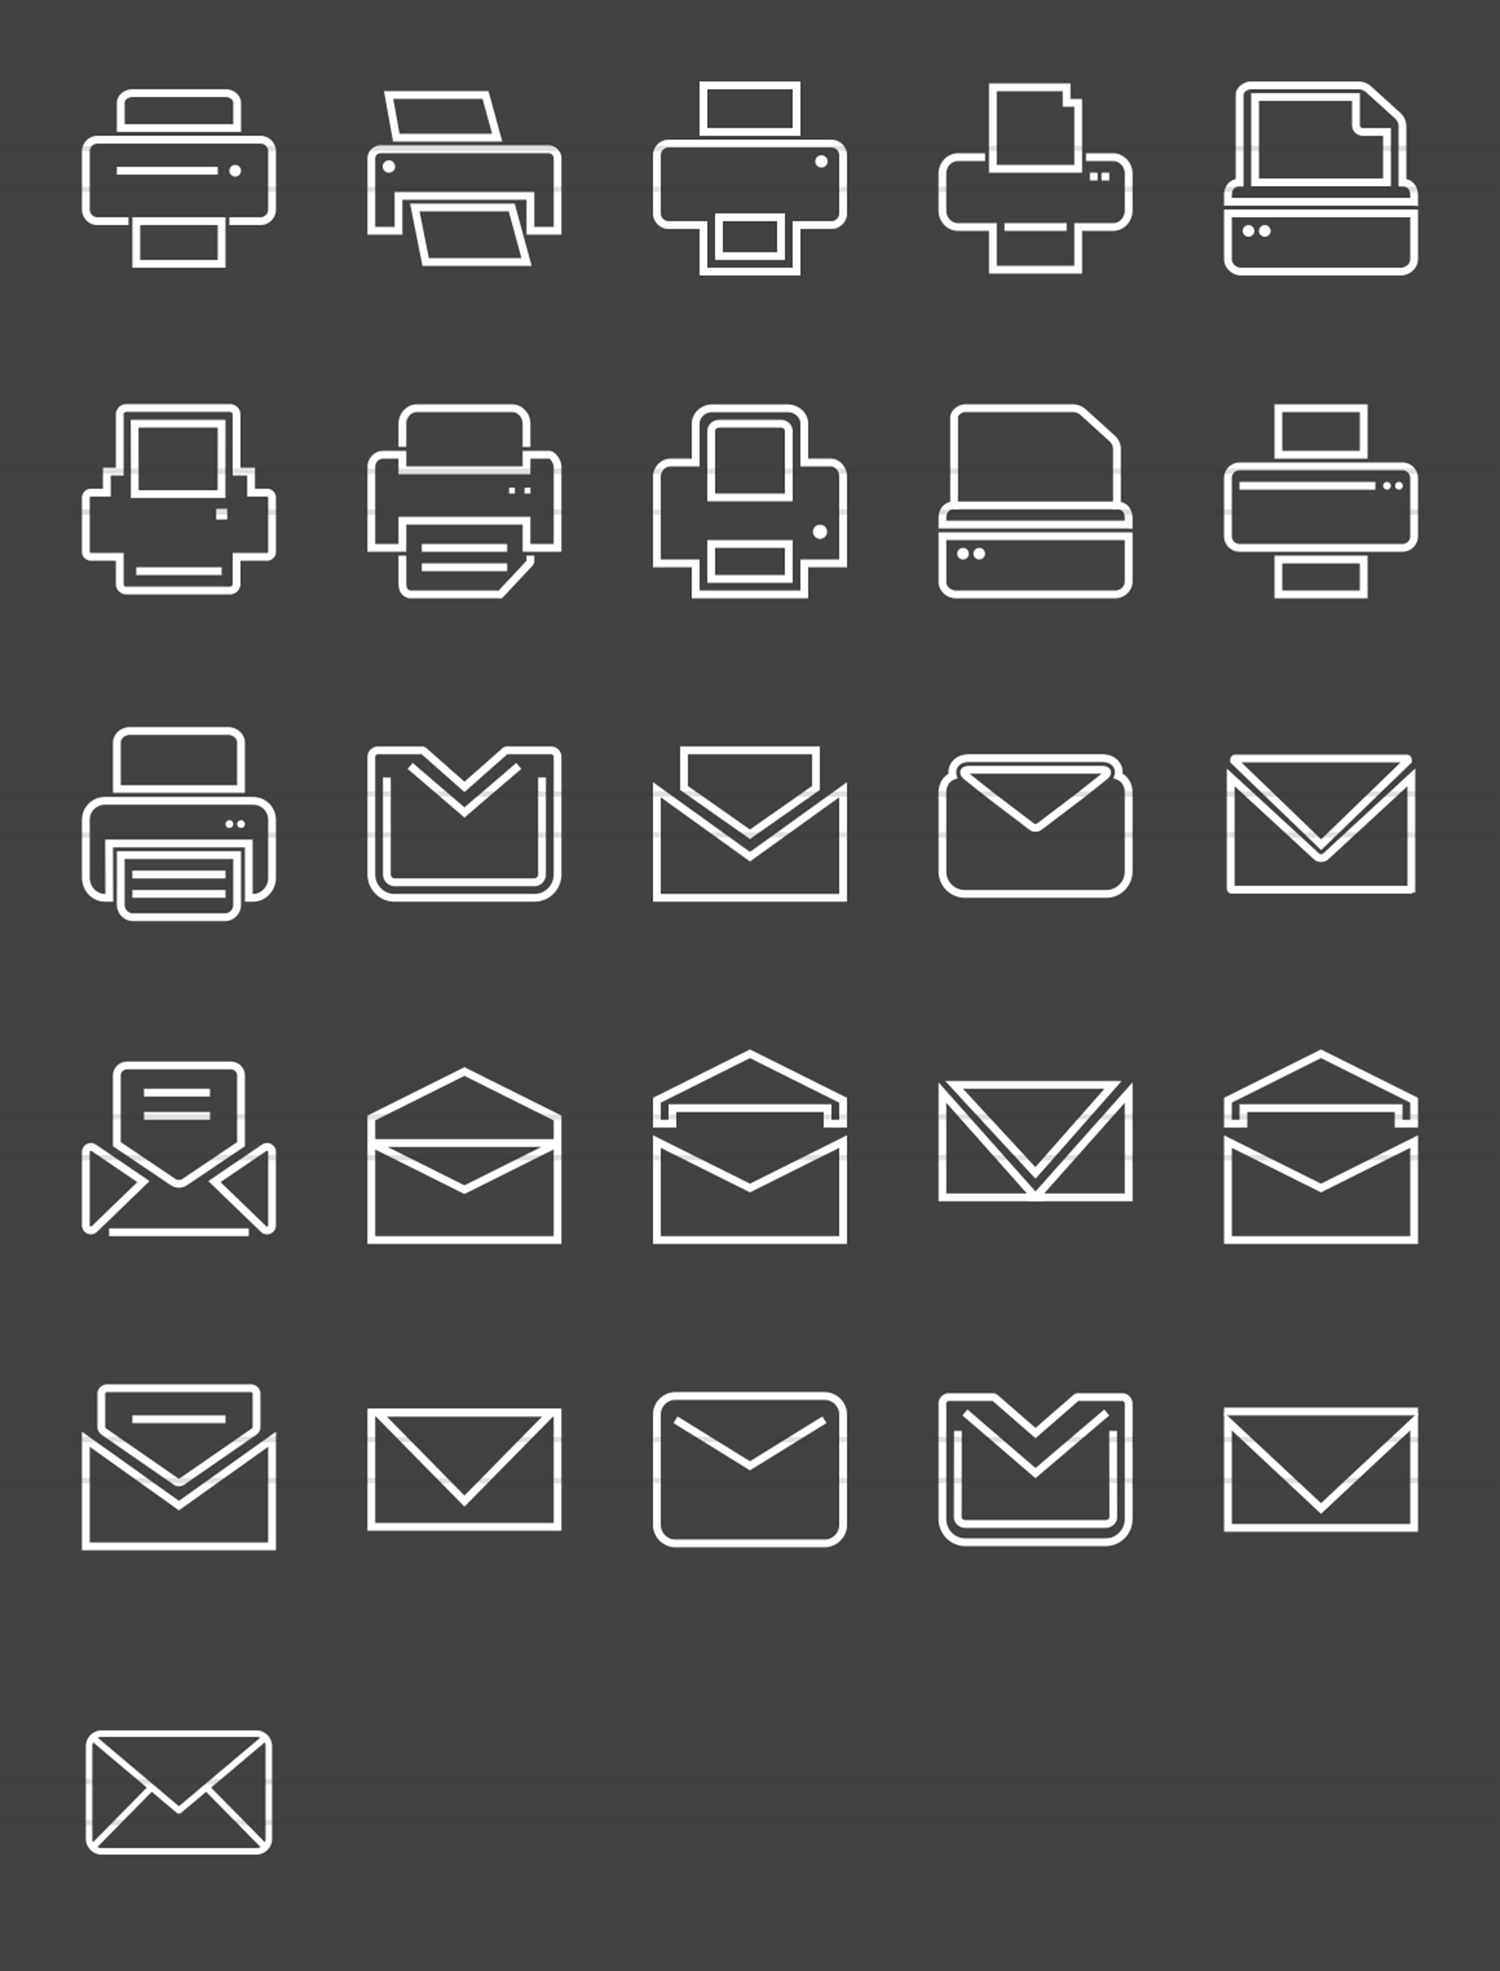 26 Email & Printer Line Inverted Icons example image 2